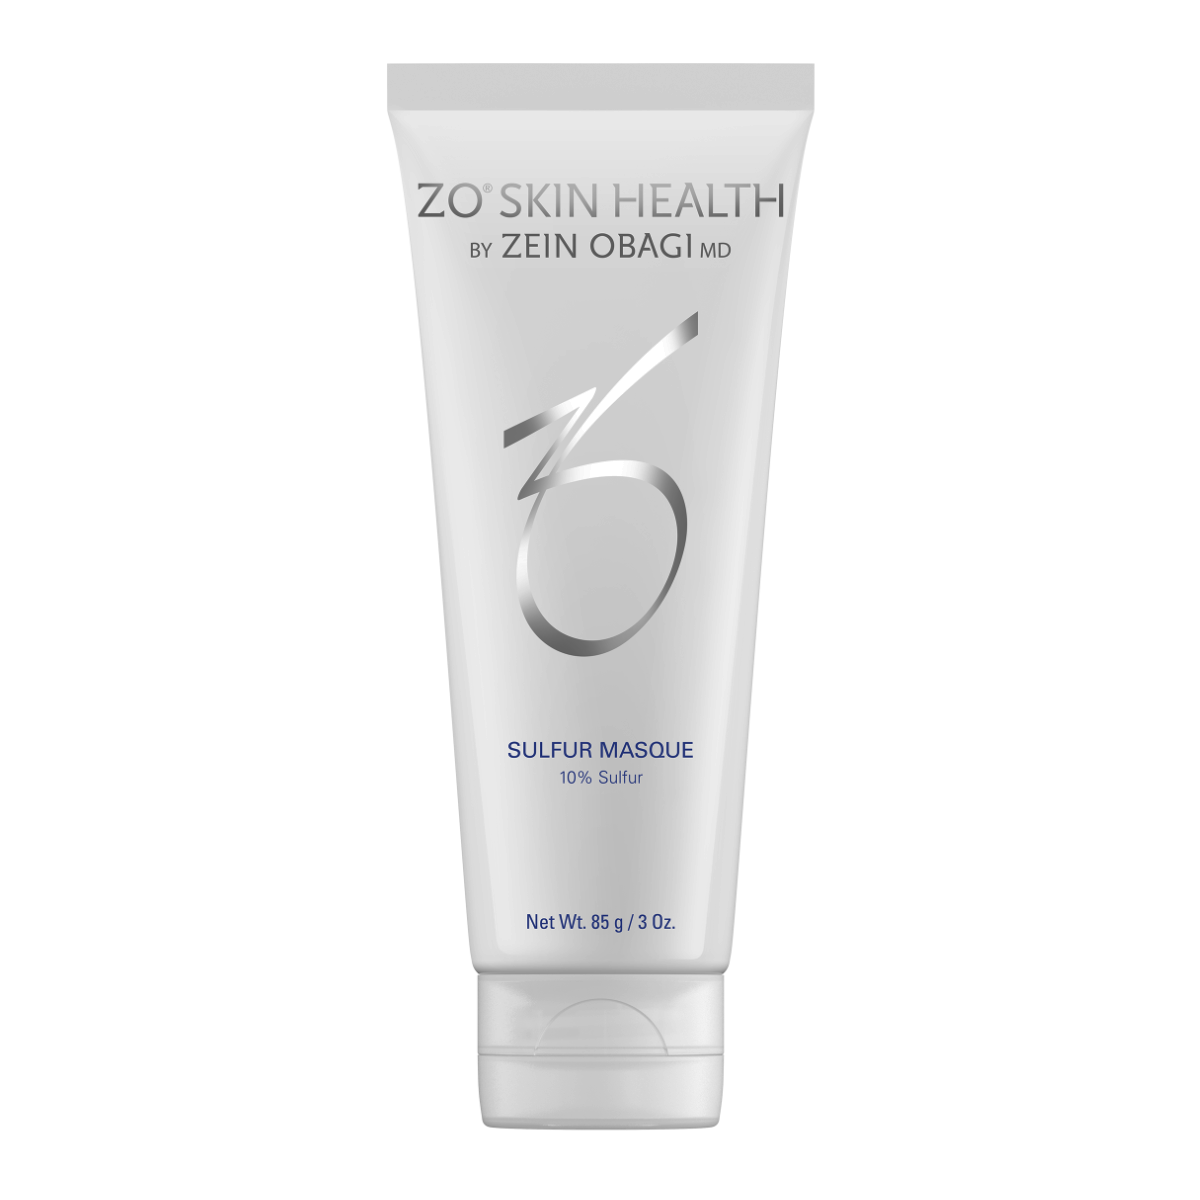 A hero product for fighting acne: ZO Sulfur Masque